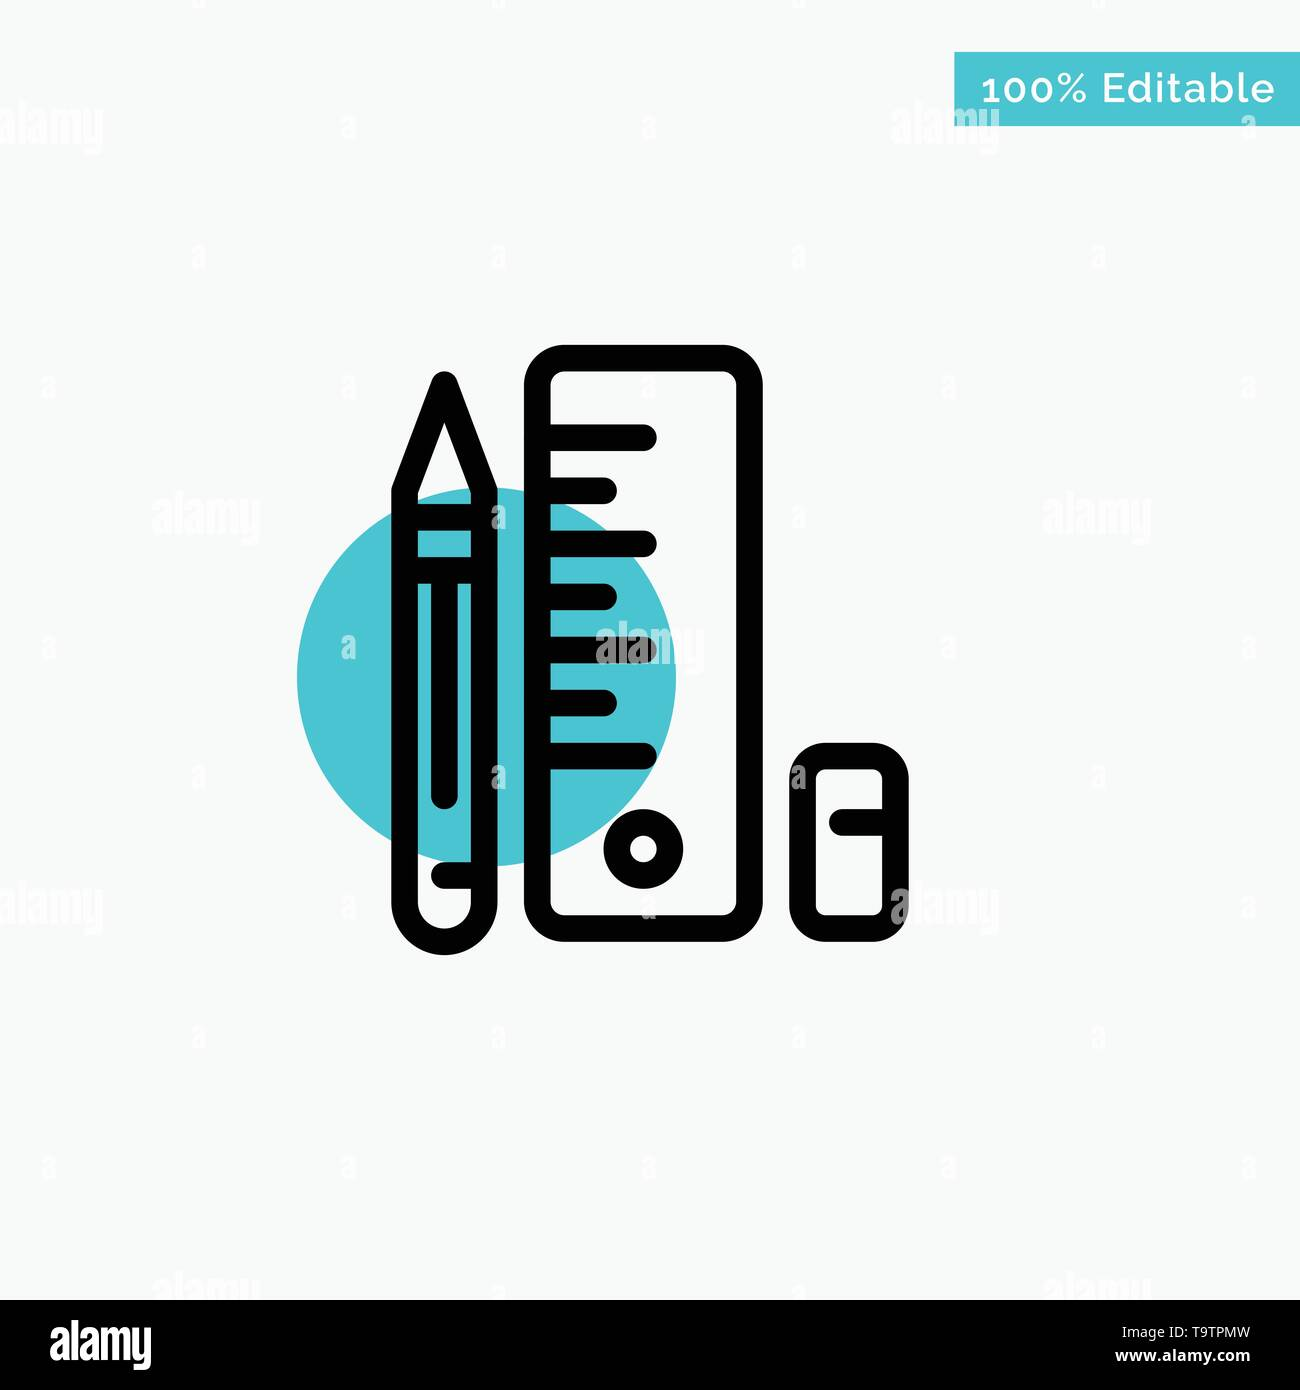 Education, Pen, Pencil, Scale turquoise highlight circle point Vector icon - Stock Image